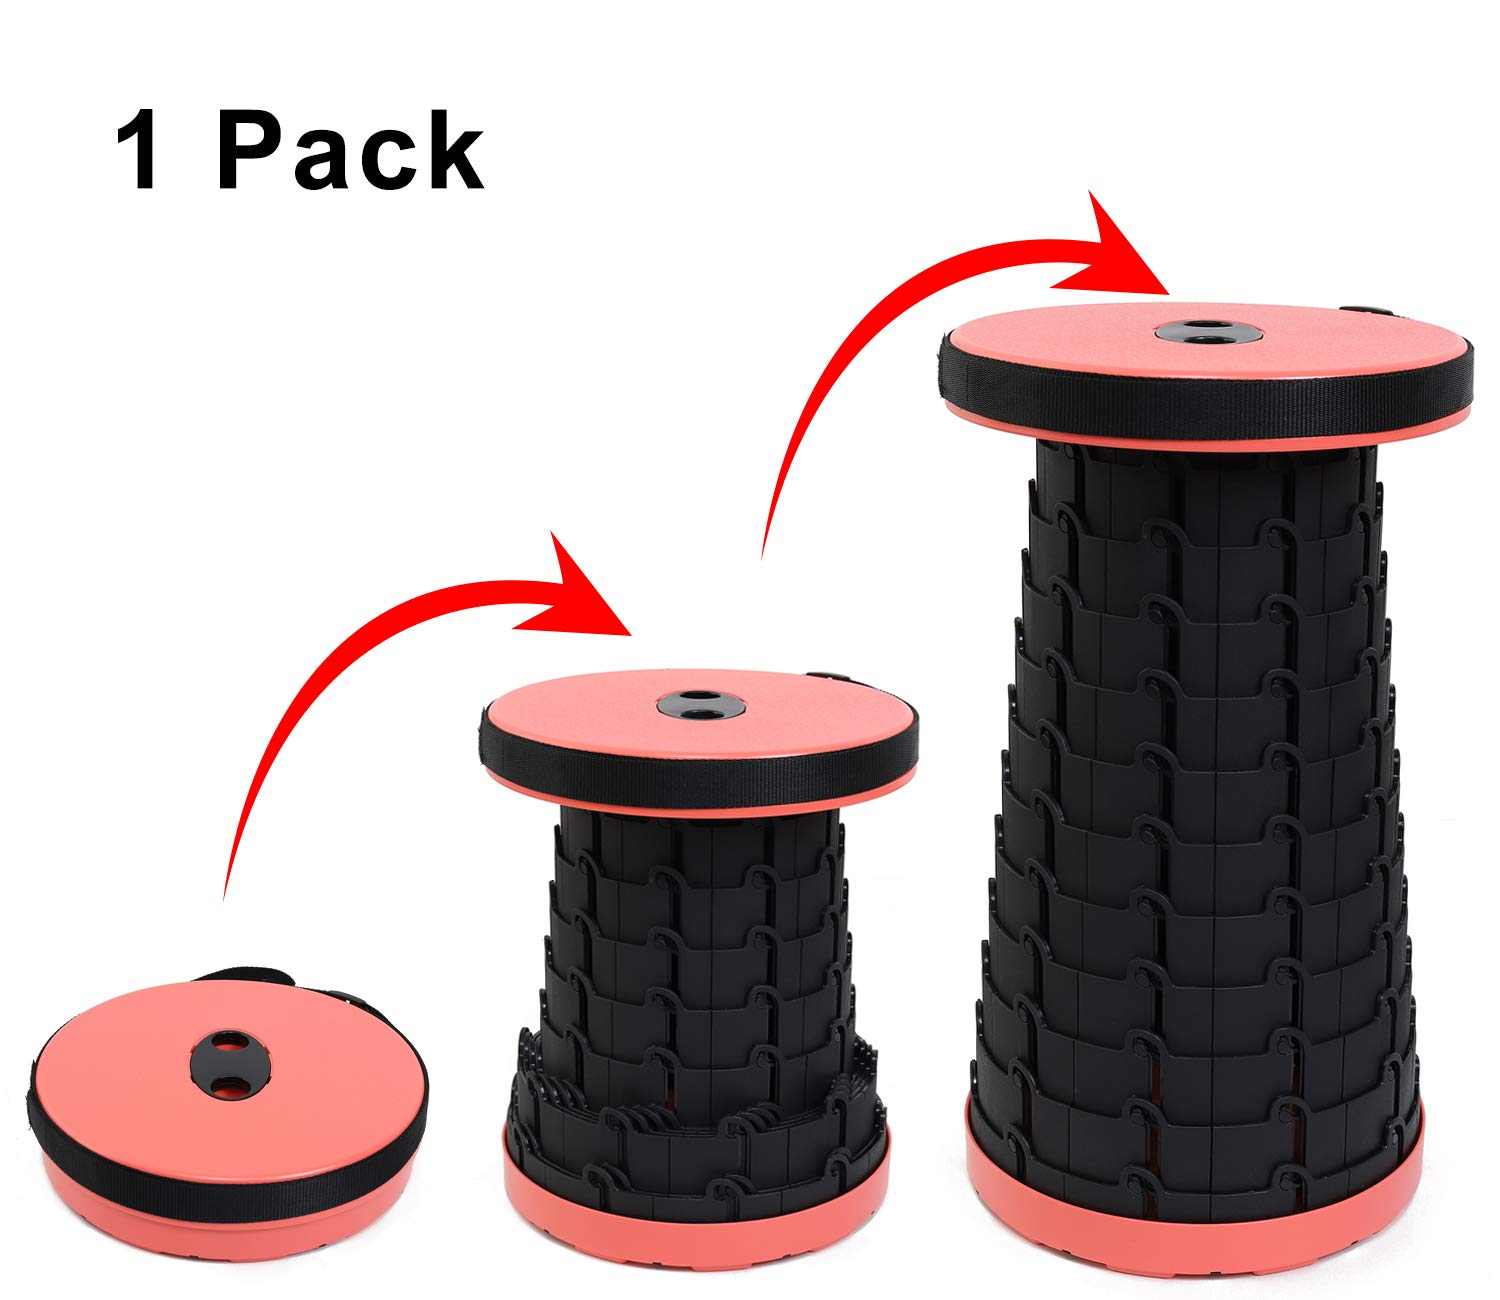 Retractable Stool Premium Lightweight Collapsible Stools for Fishing BBQ Outdoor Travel Hiking Procener Portable Folding Stools for Camping